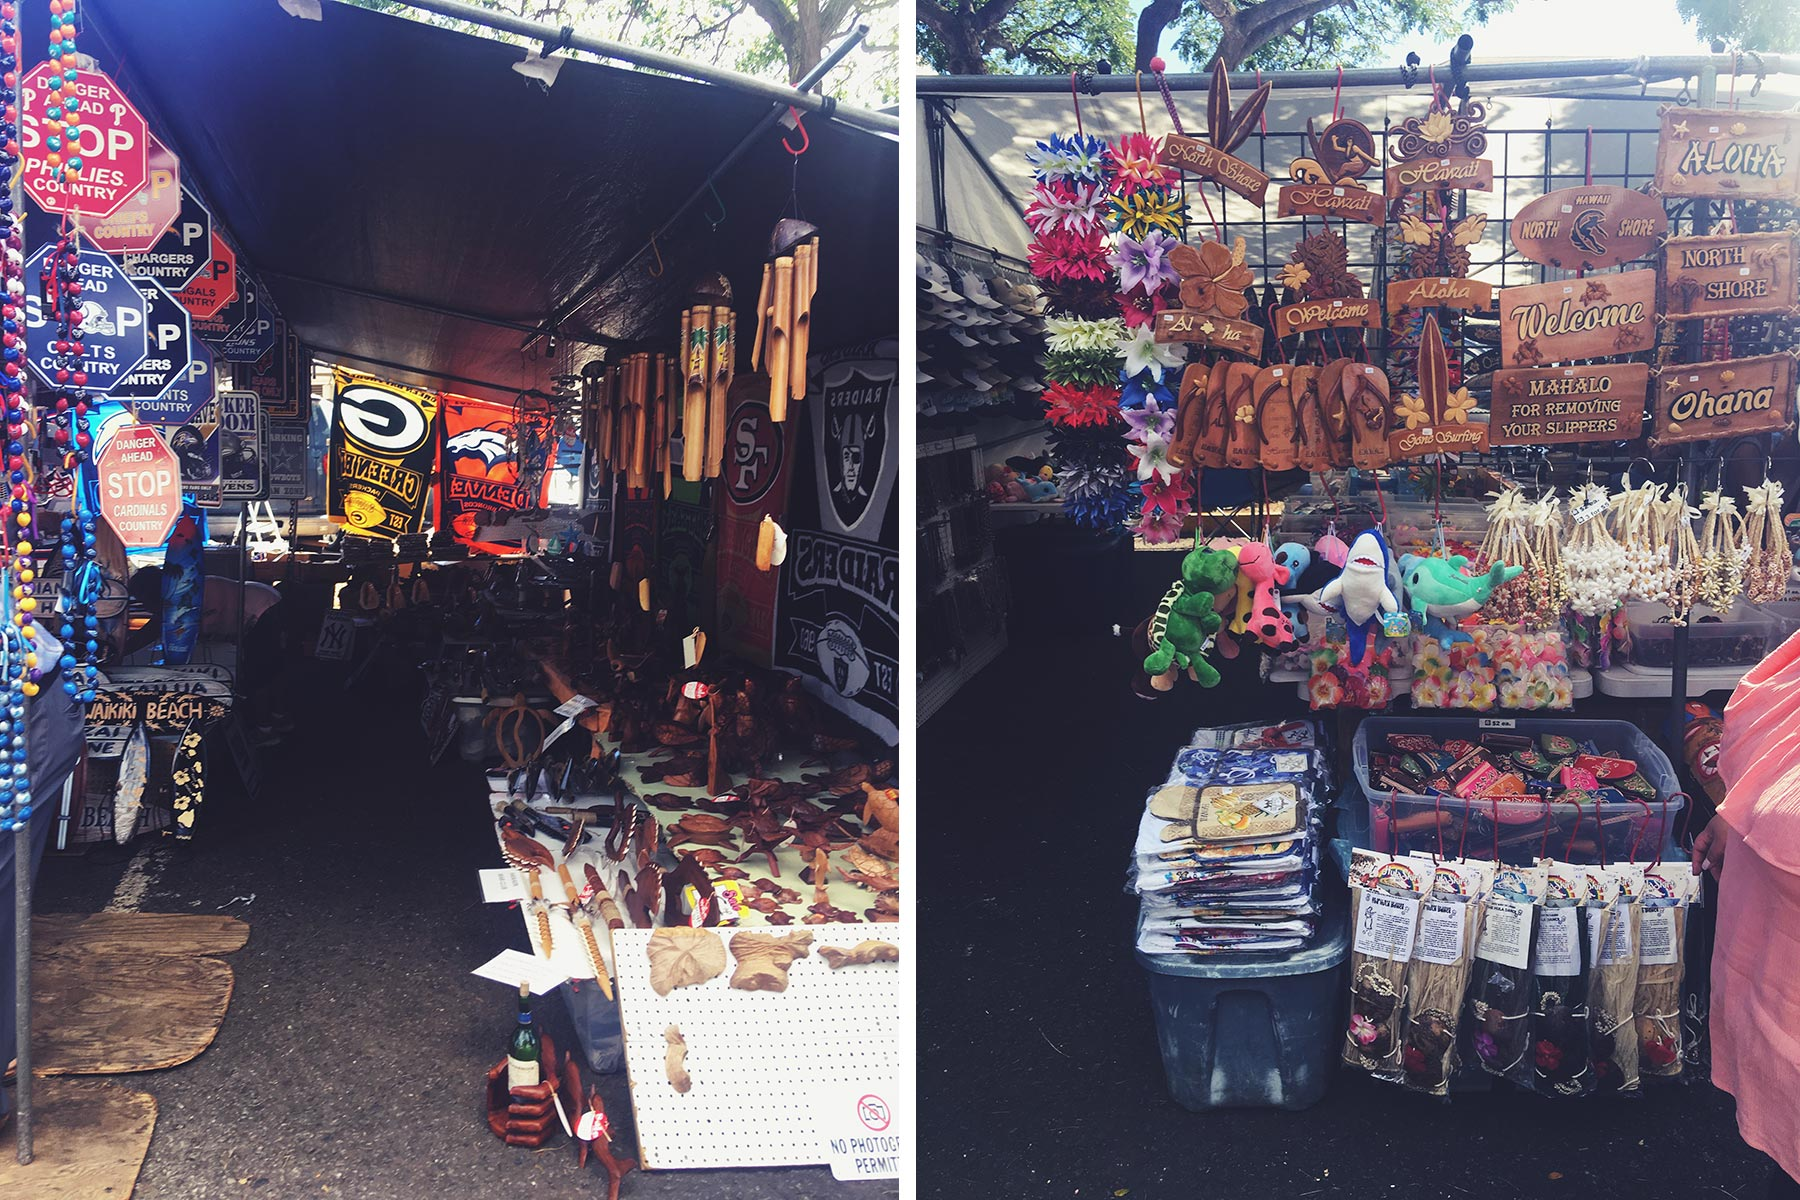 Aloha Stadium Swap Meet - Honolulu, Hawaii